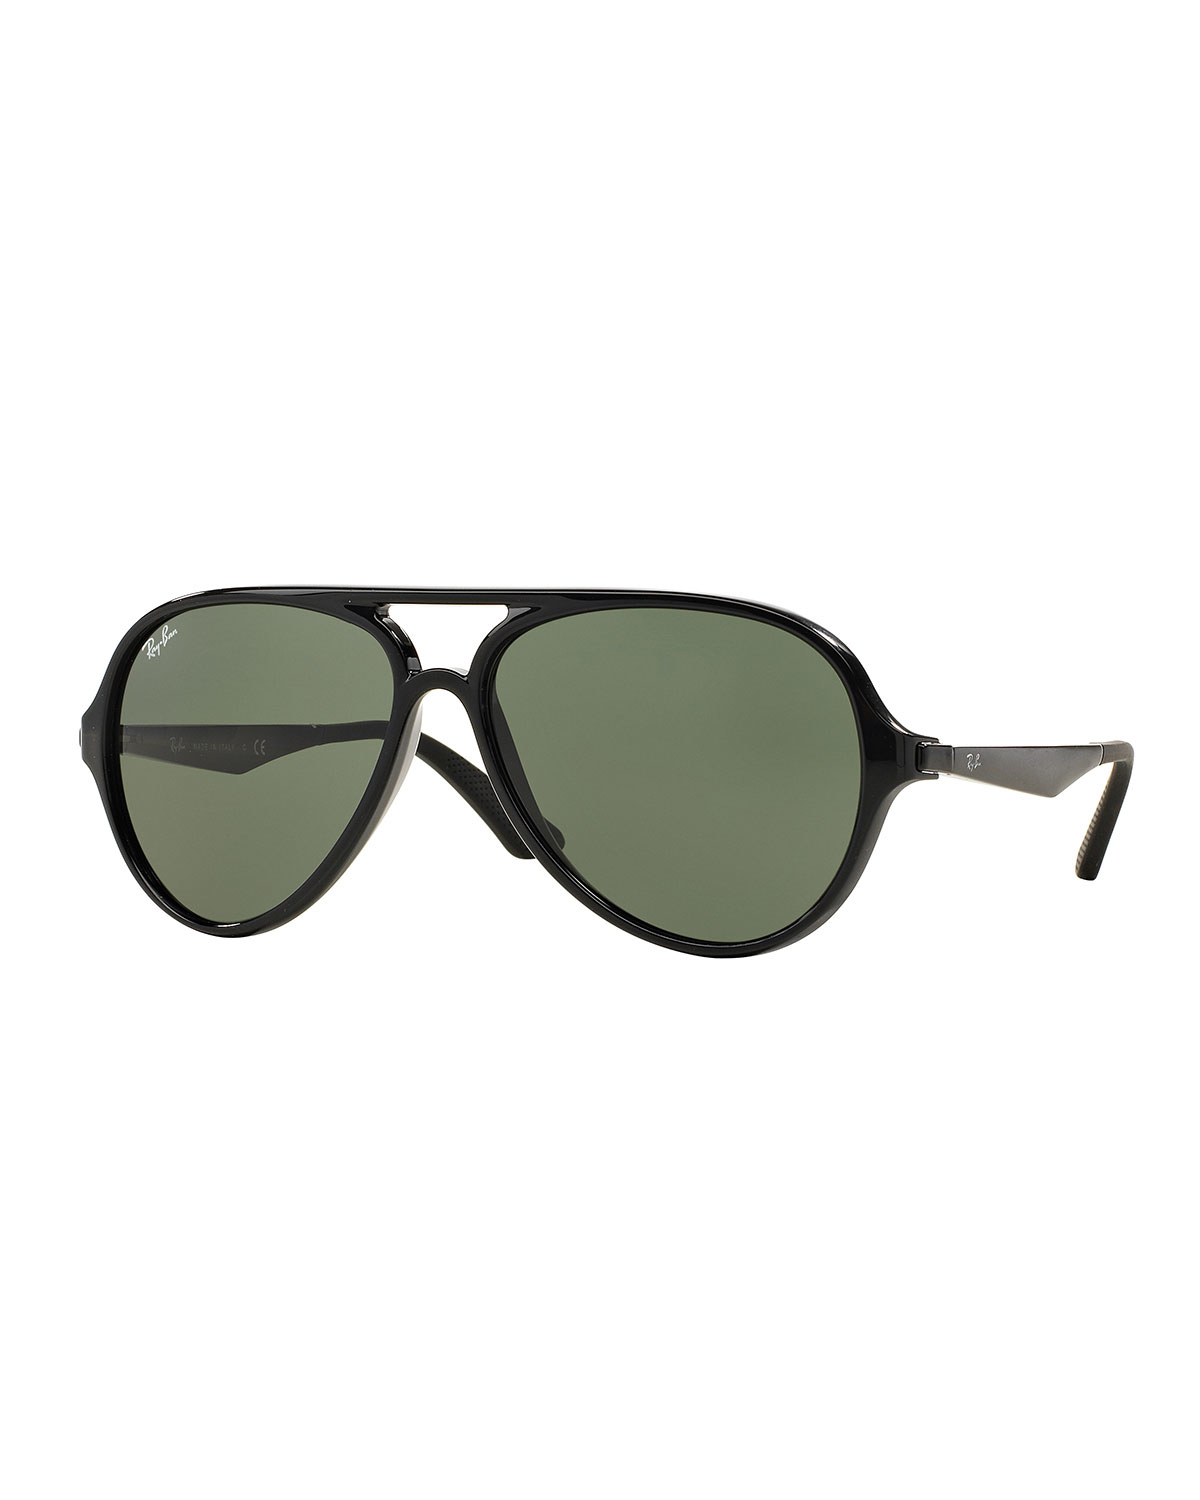 Lyst - Ray-Ban Plastic Aviator Sunglasses in Black for Men